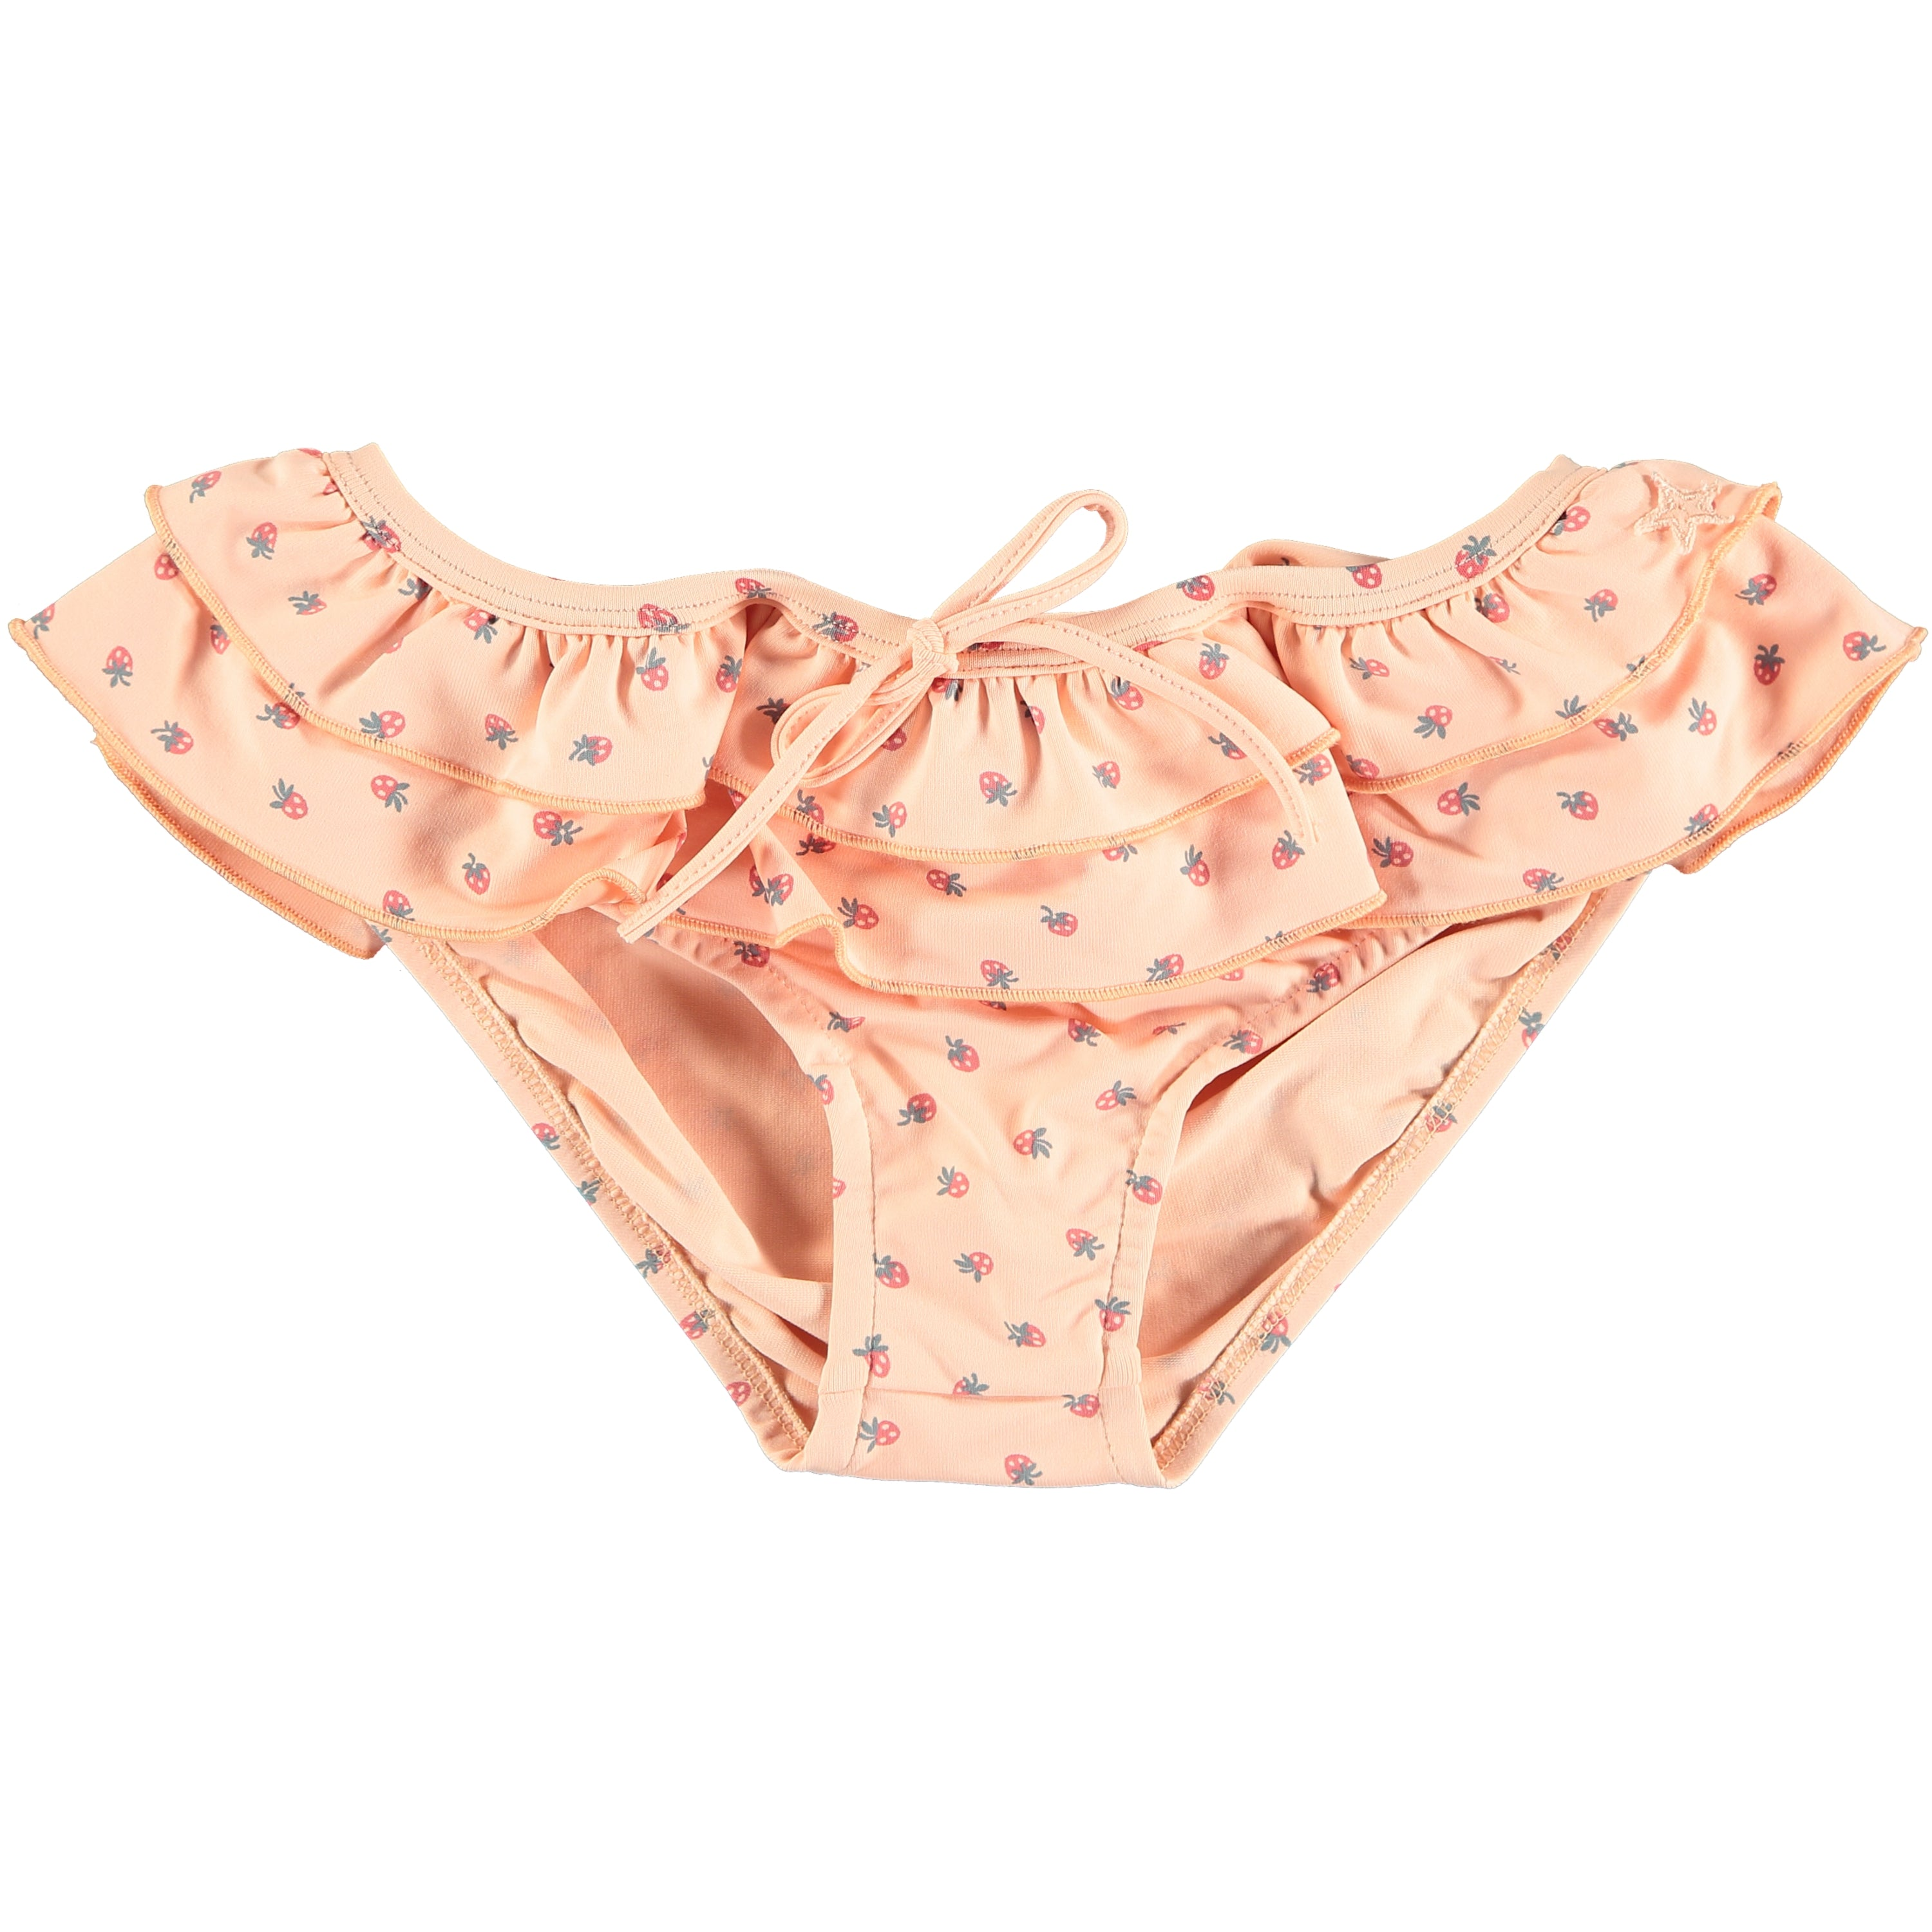 Tocoto Vintage Strawberry Bikini Bottom